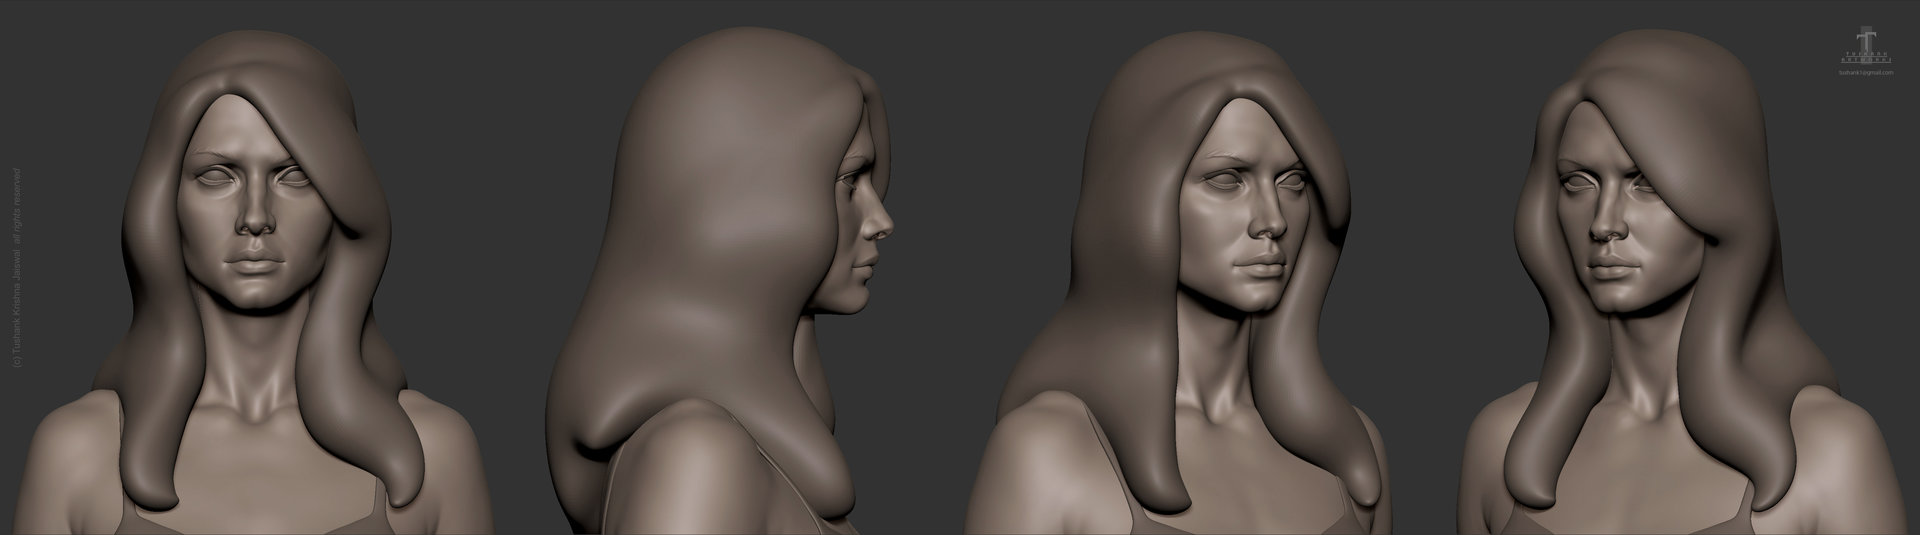 Tushank k jaiswal anatomy study female head